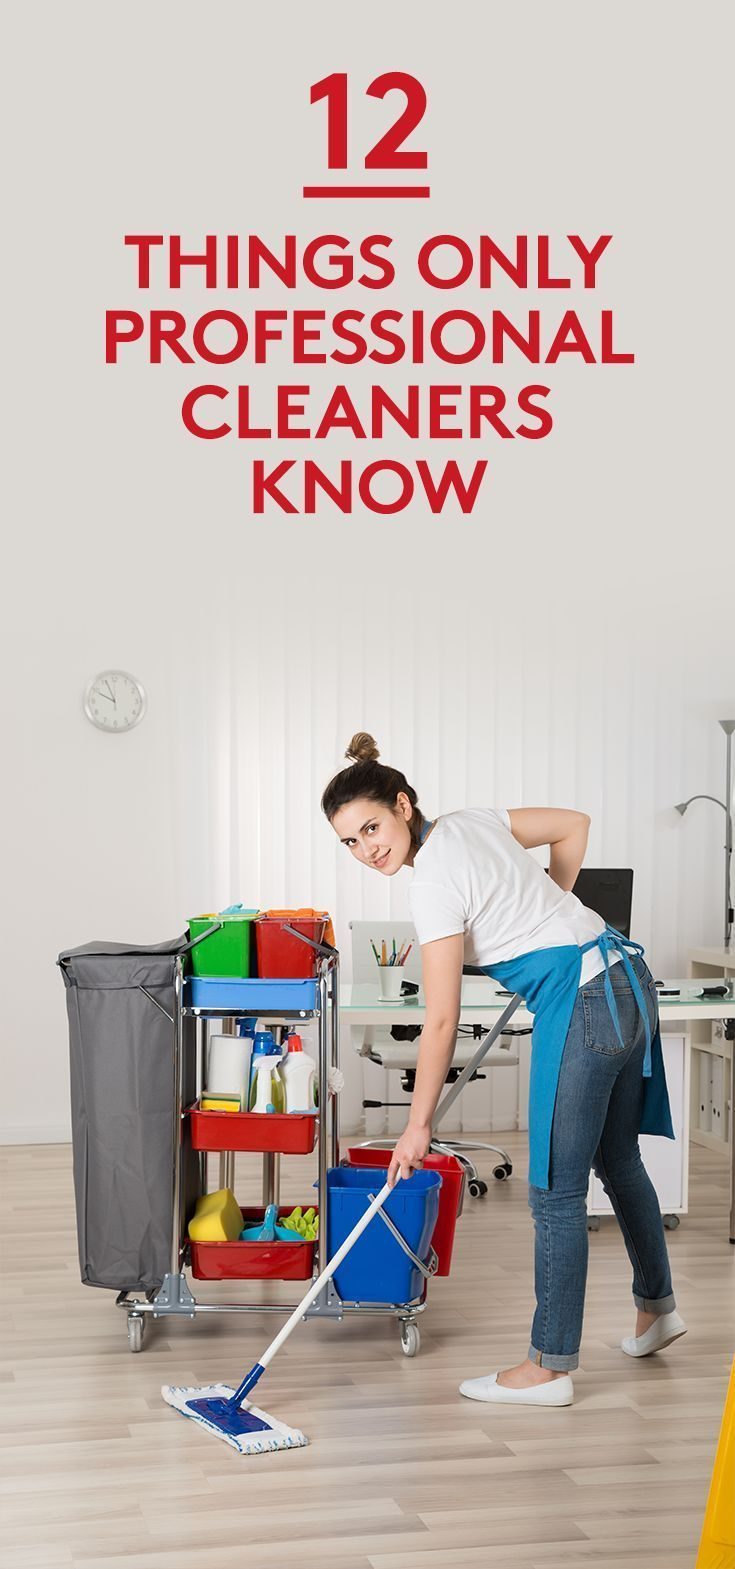 12 Things Only Professional Cleaners Know   A few of our favorite cleaning pros share some of their best tips for stubborn spots around the house. From stains in the laundry room to fingerprints on the refrigerator to the (dreaded!) toilet bowl, they have